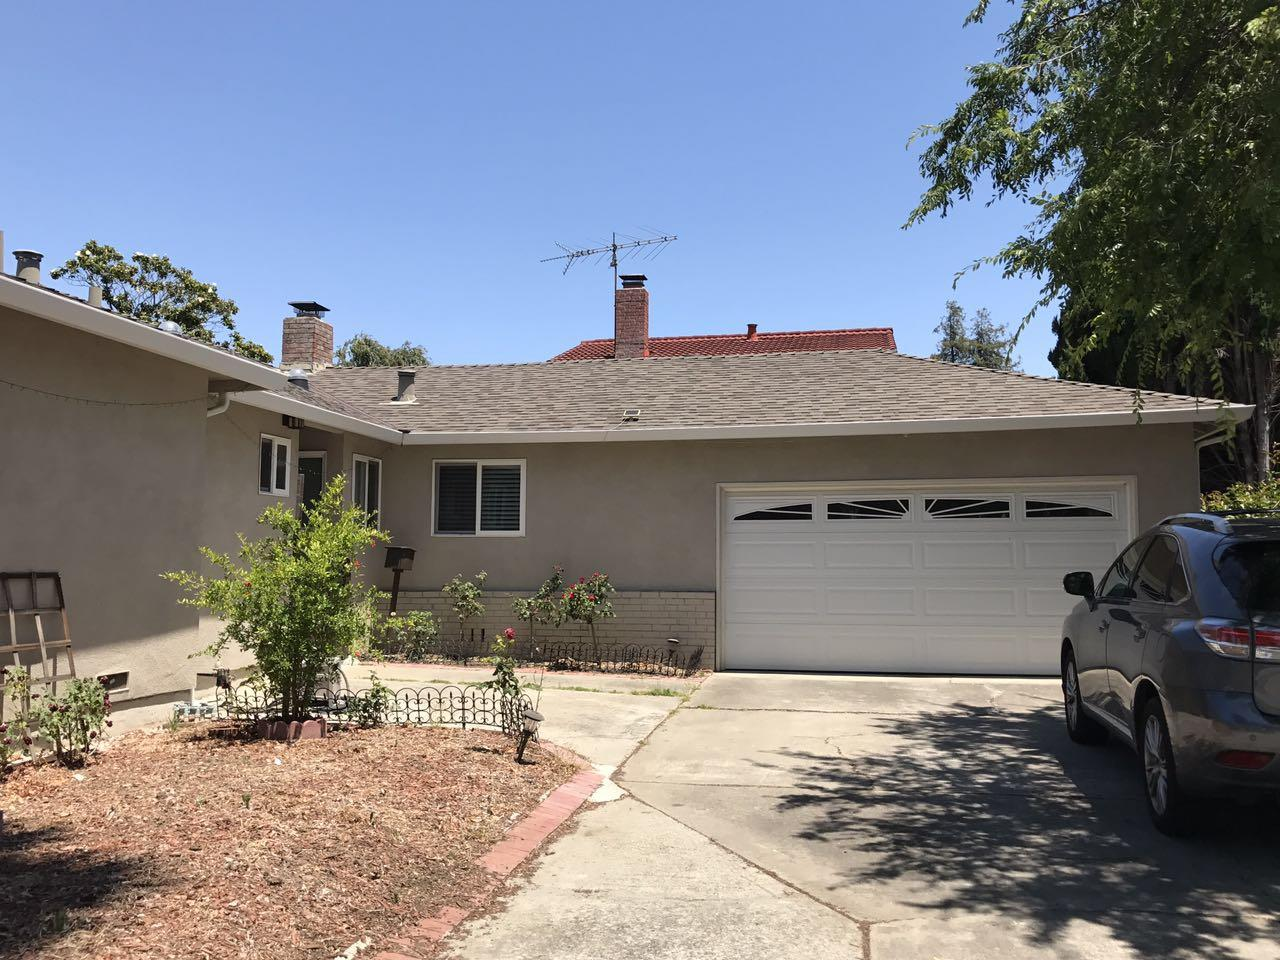 Single Family Home for Rent at 6493 Edgemoor Way San Jose, California 95129 United States